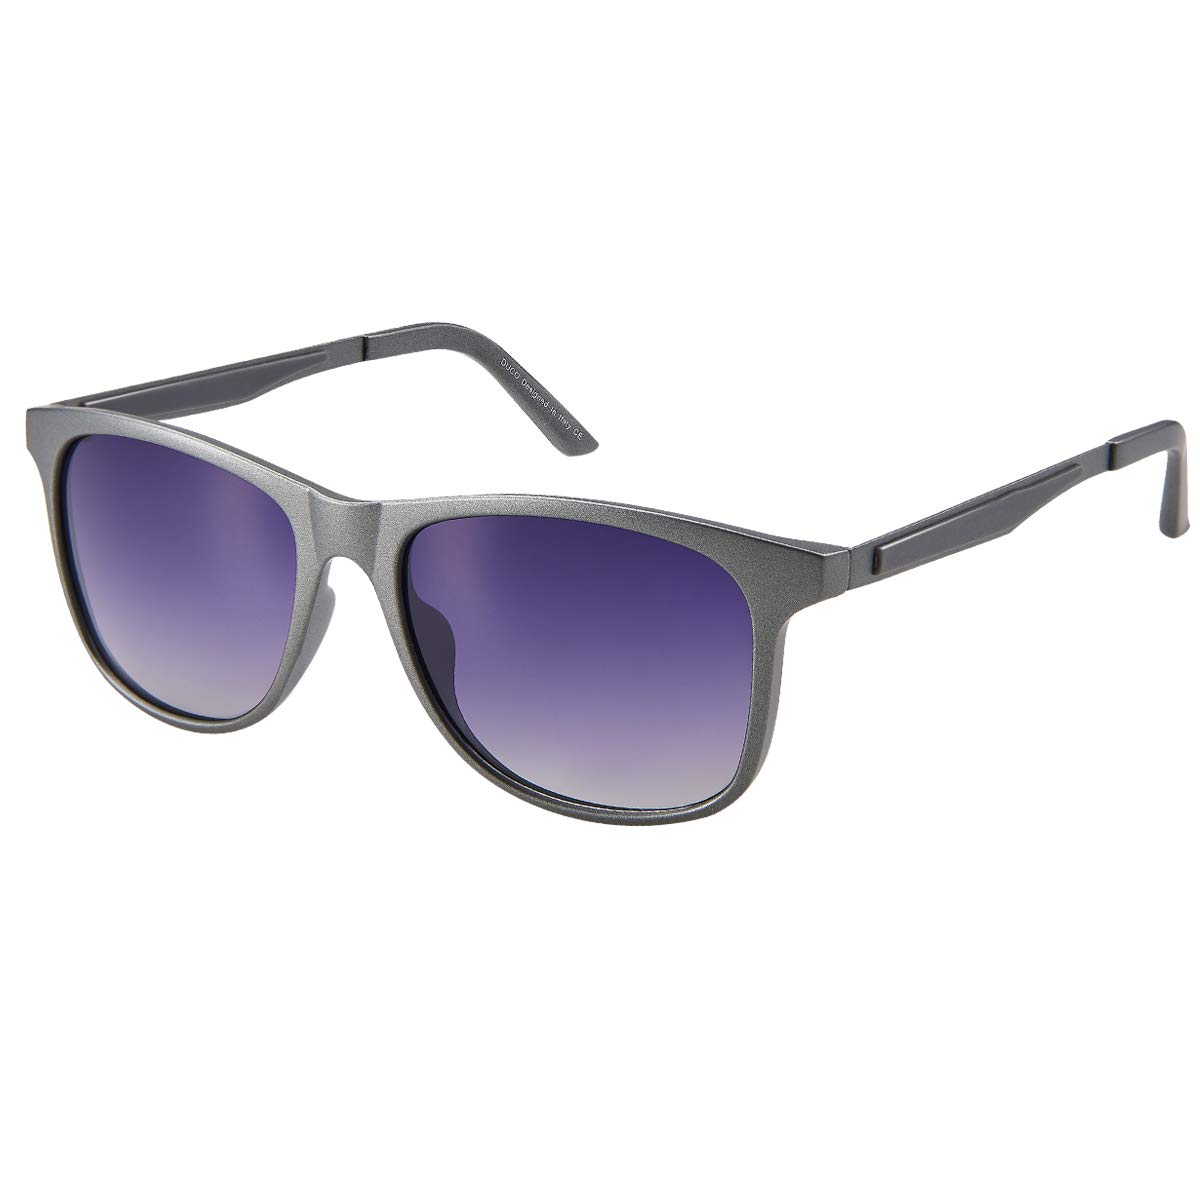 DUCO Men's or Women's Polarized Sunglasses with Gradient Lens for Cycling Running Driving 3030 by DUCO